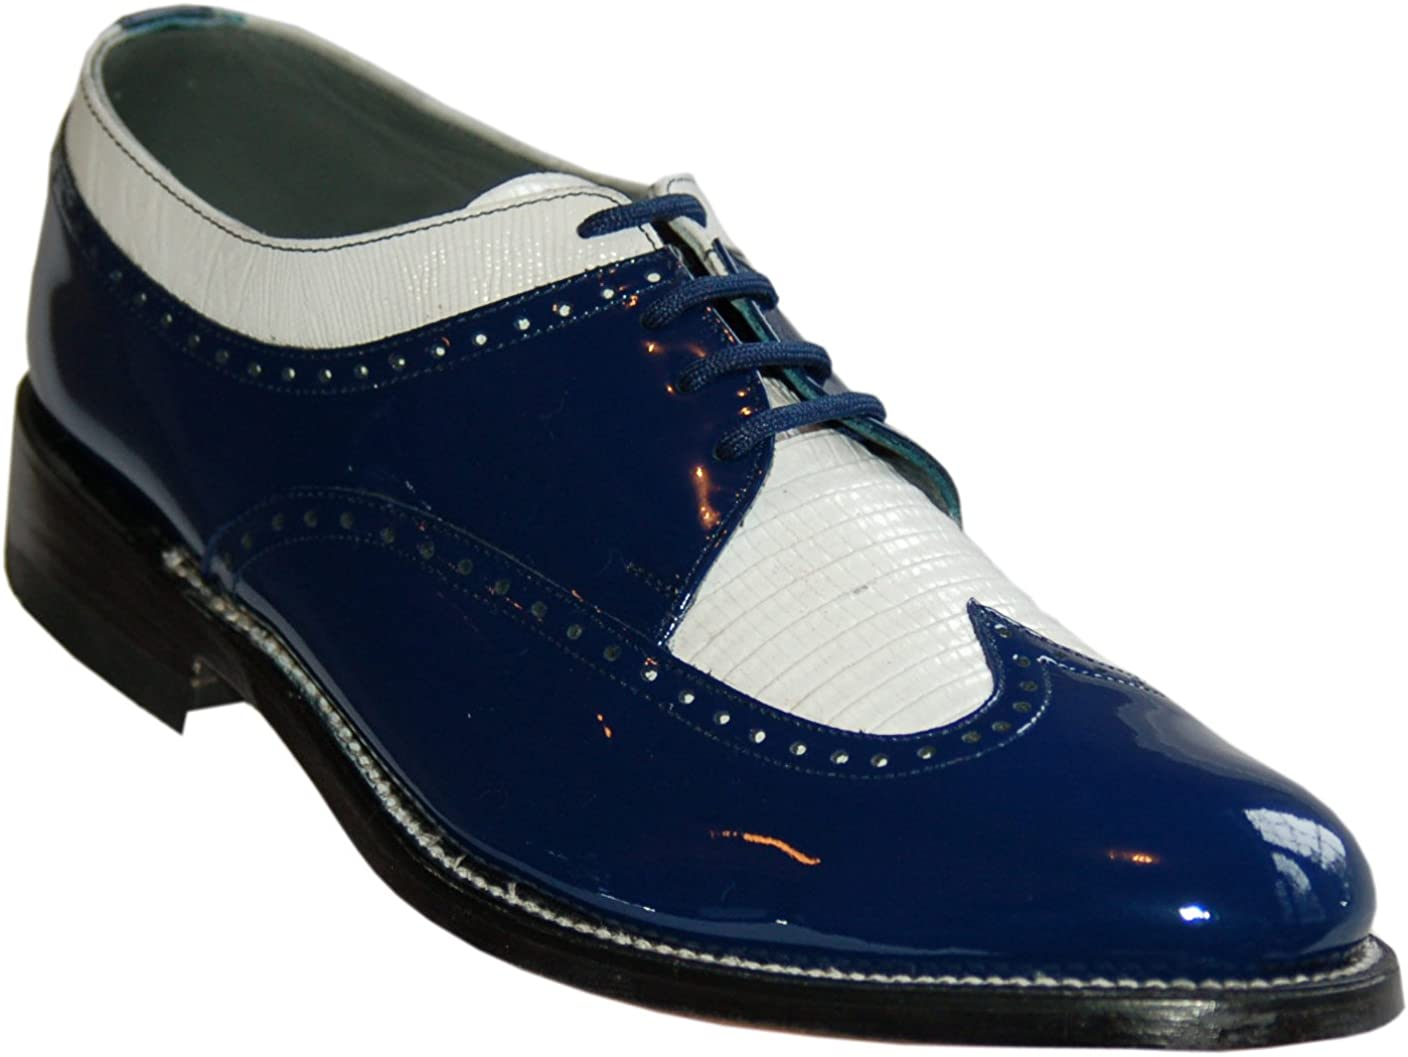 Stacy Baldwin Blue and White Wingtip